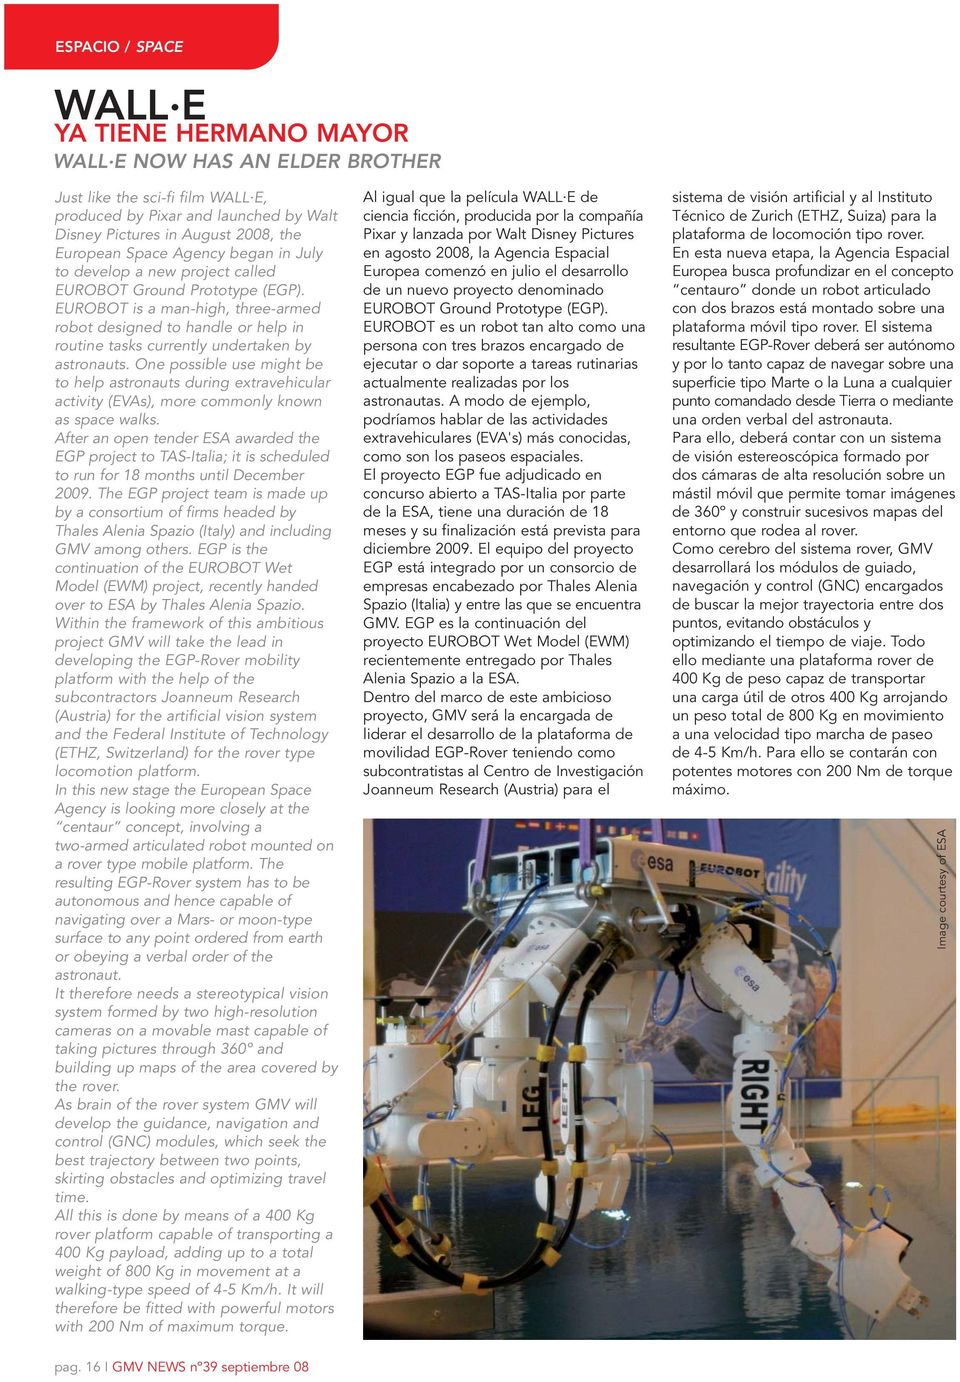 EUROBOT is a man-high, three-armed robot designed to handle or help in routine tasks currently undertaken by astronauts.